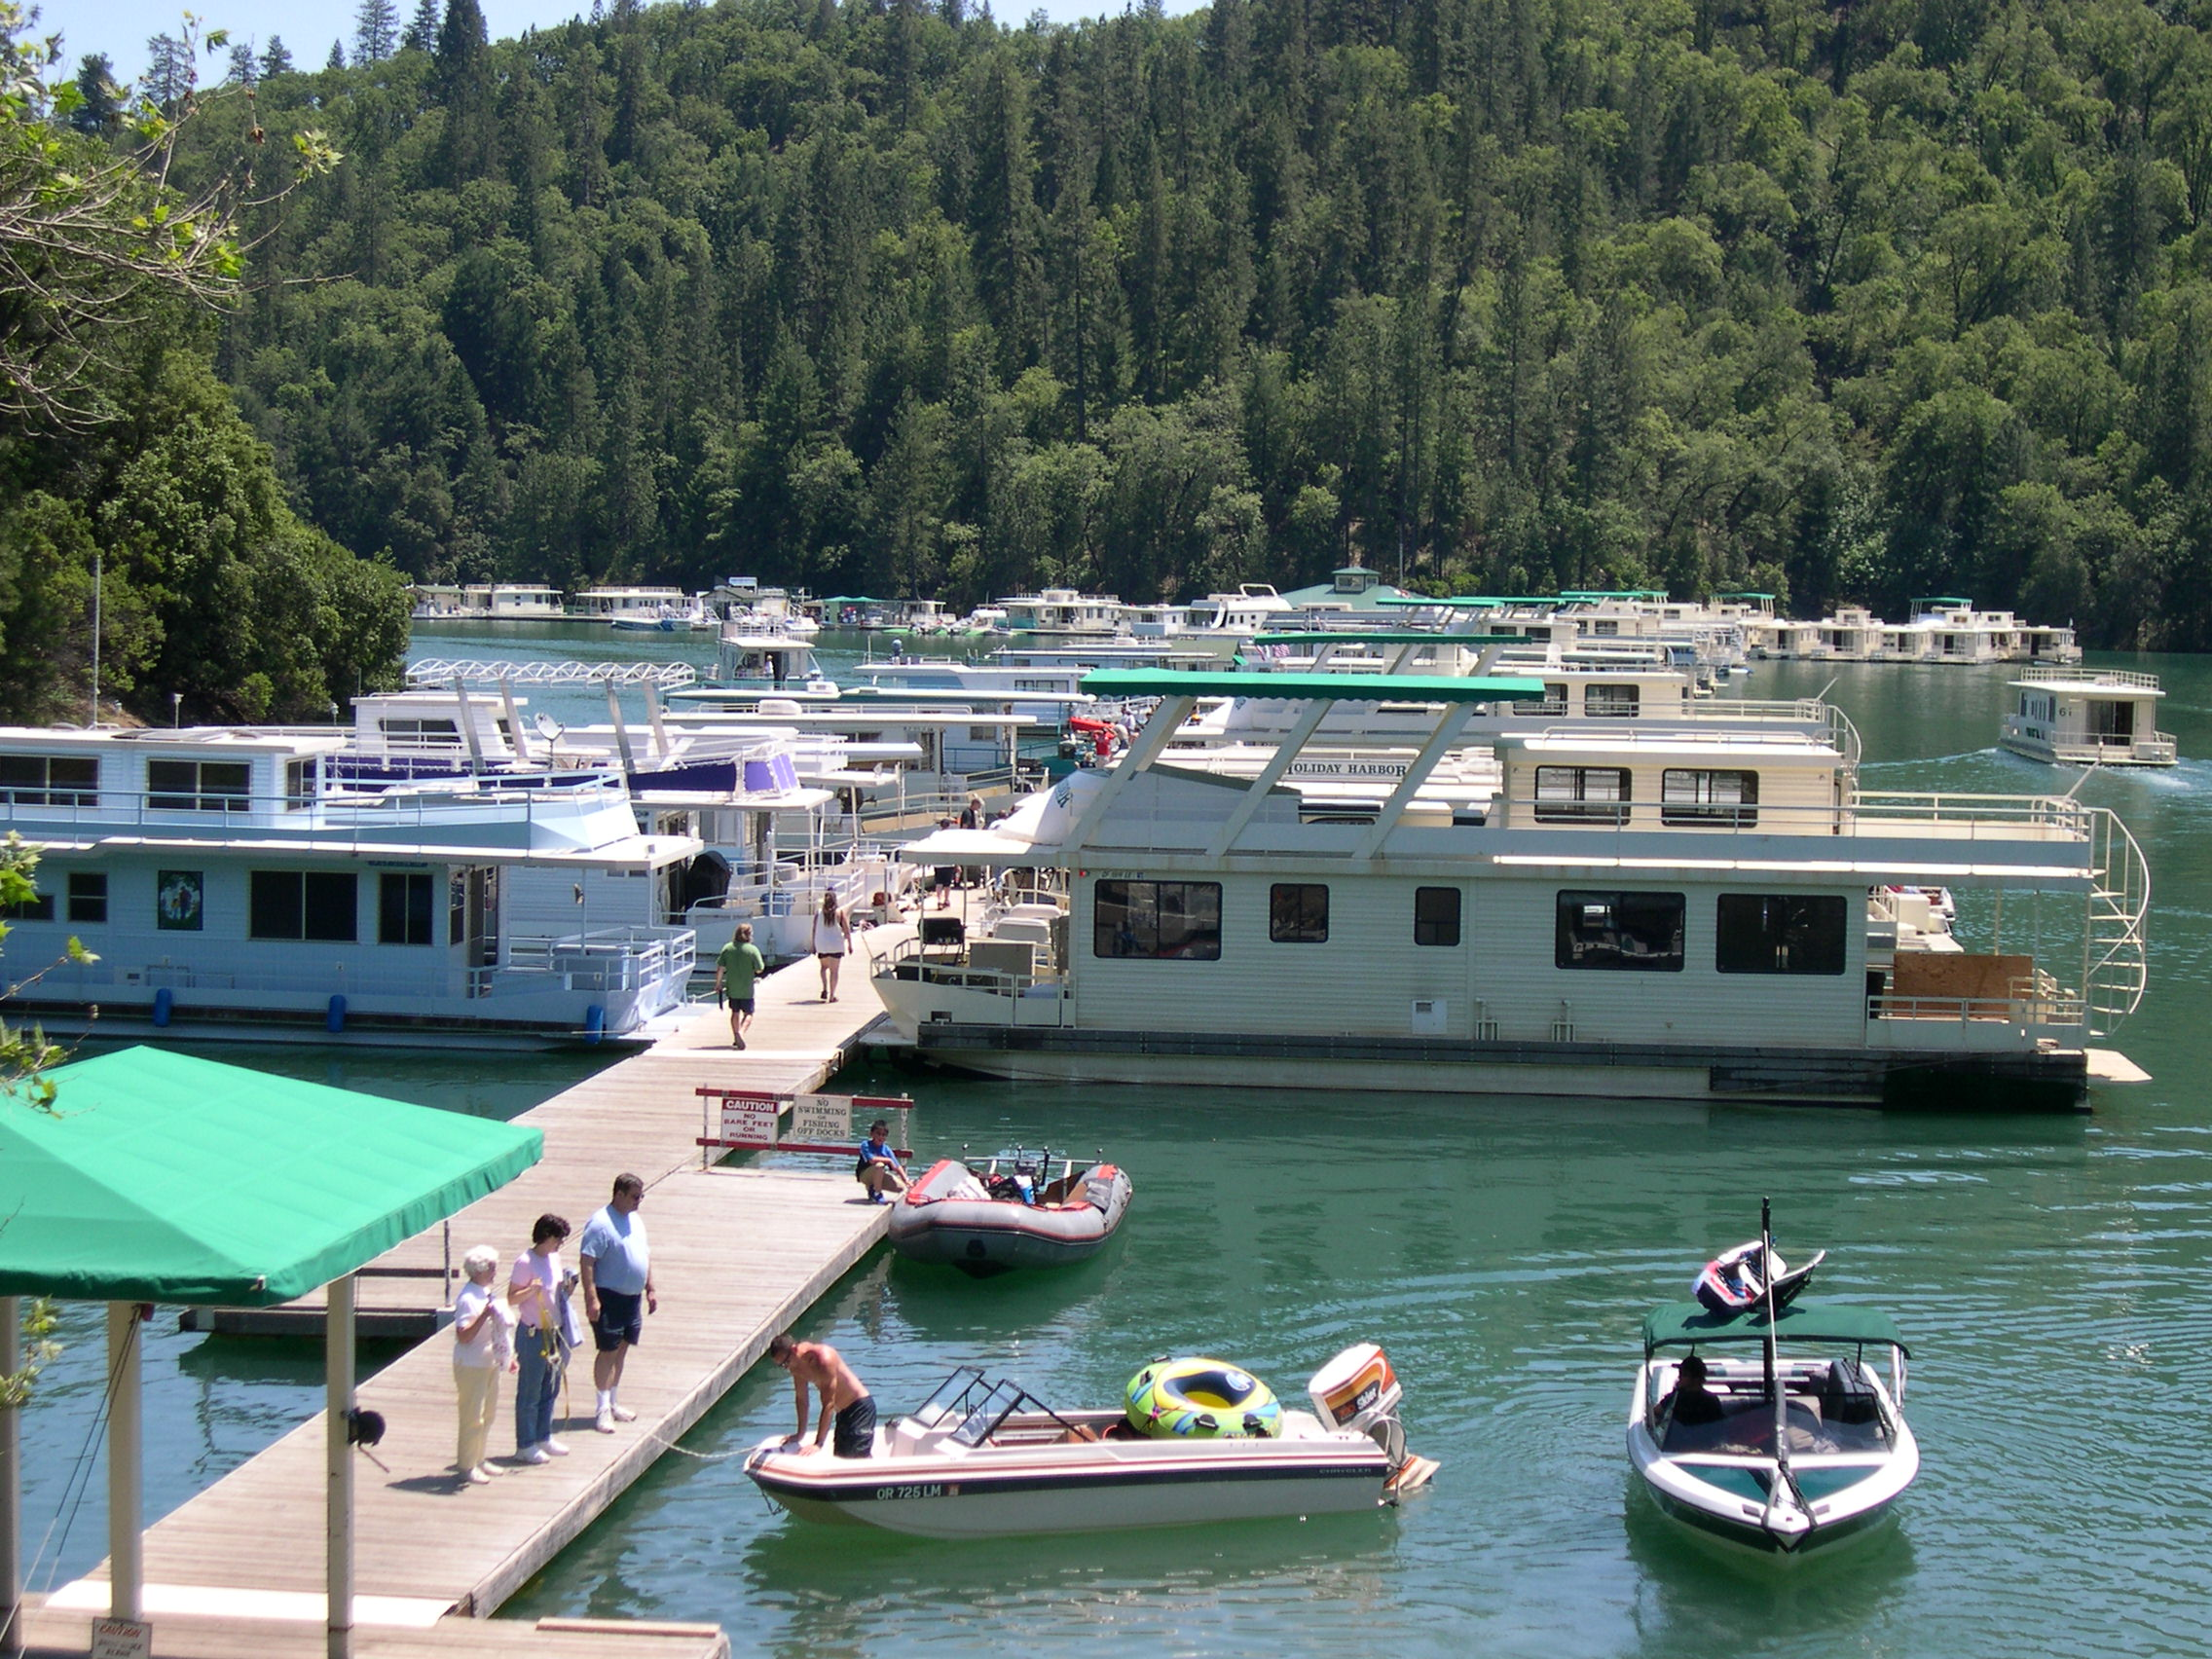 The Harbor Cafe at Shasta Lake in California